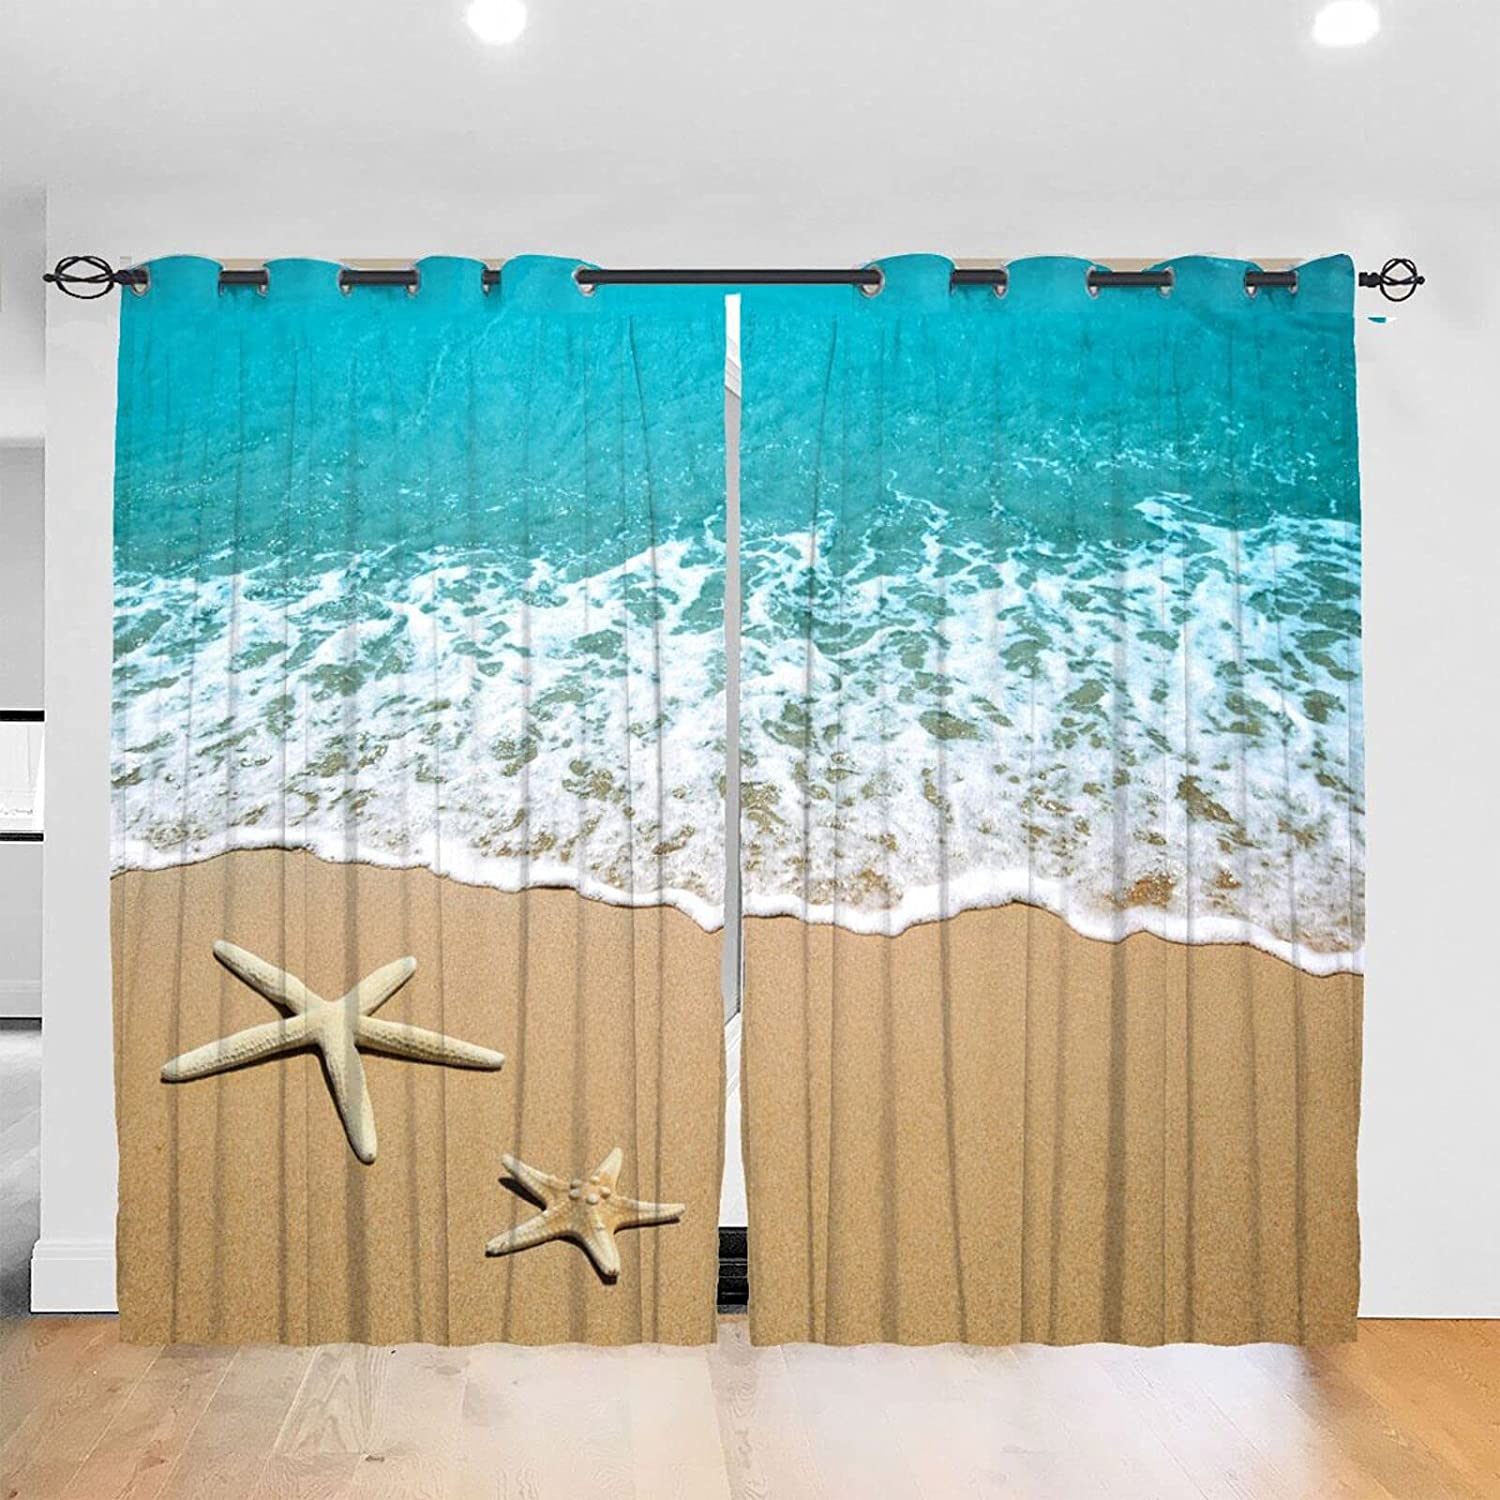 Beach Blackout Curtains 52x84 Inch Set Pa 2 Max 75% OFF of Directly managed store Darkening Window